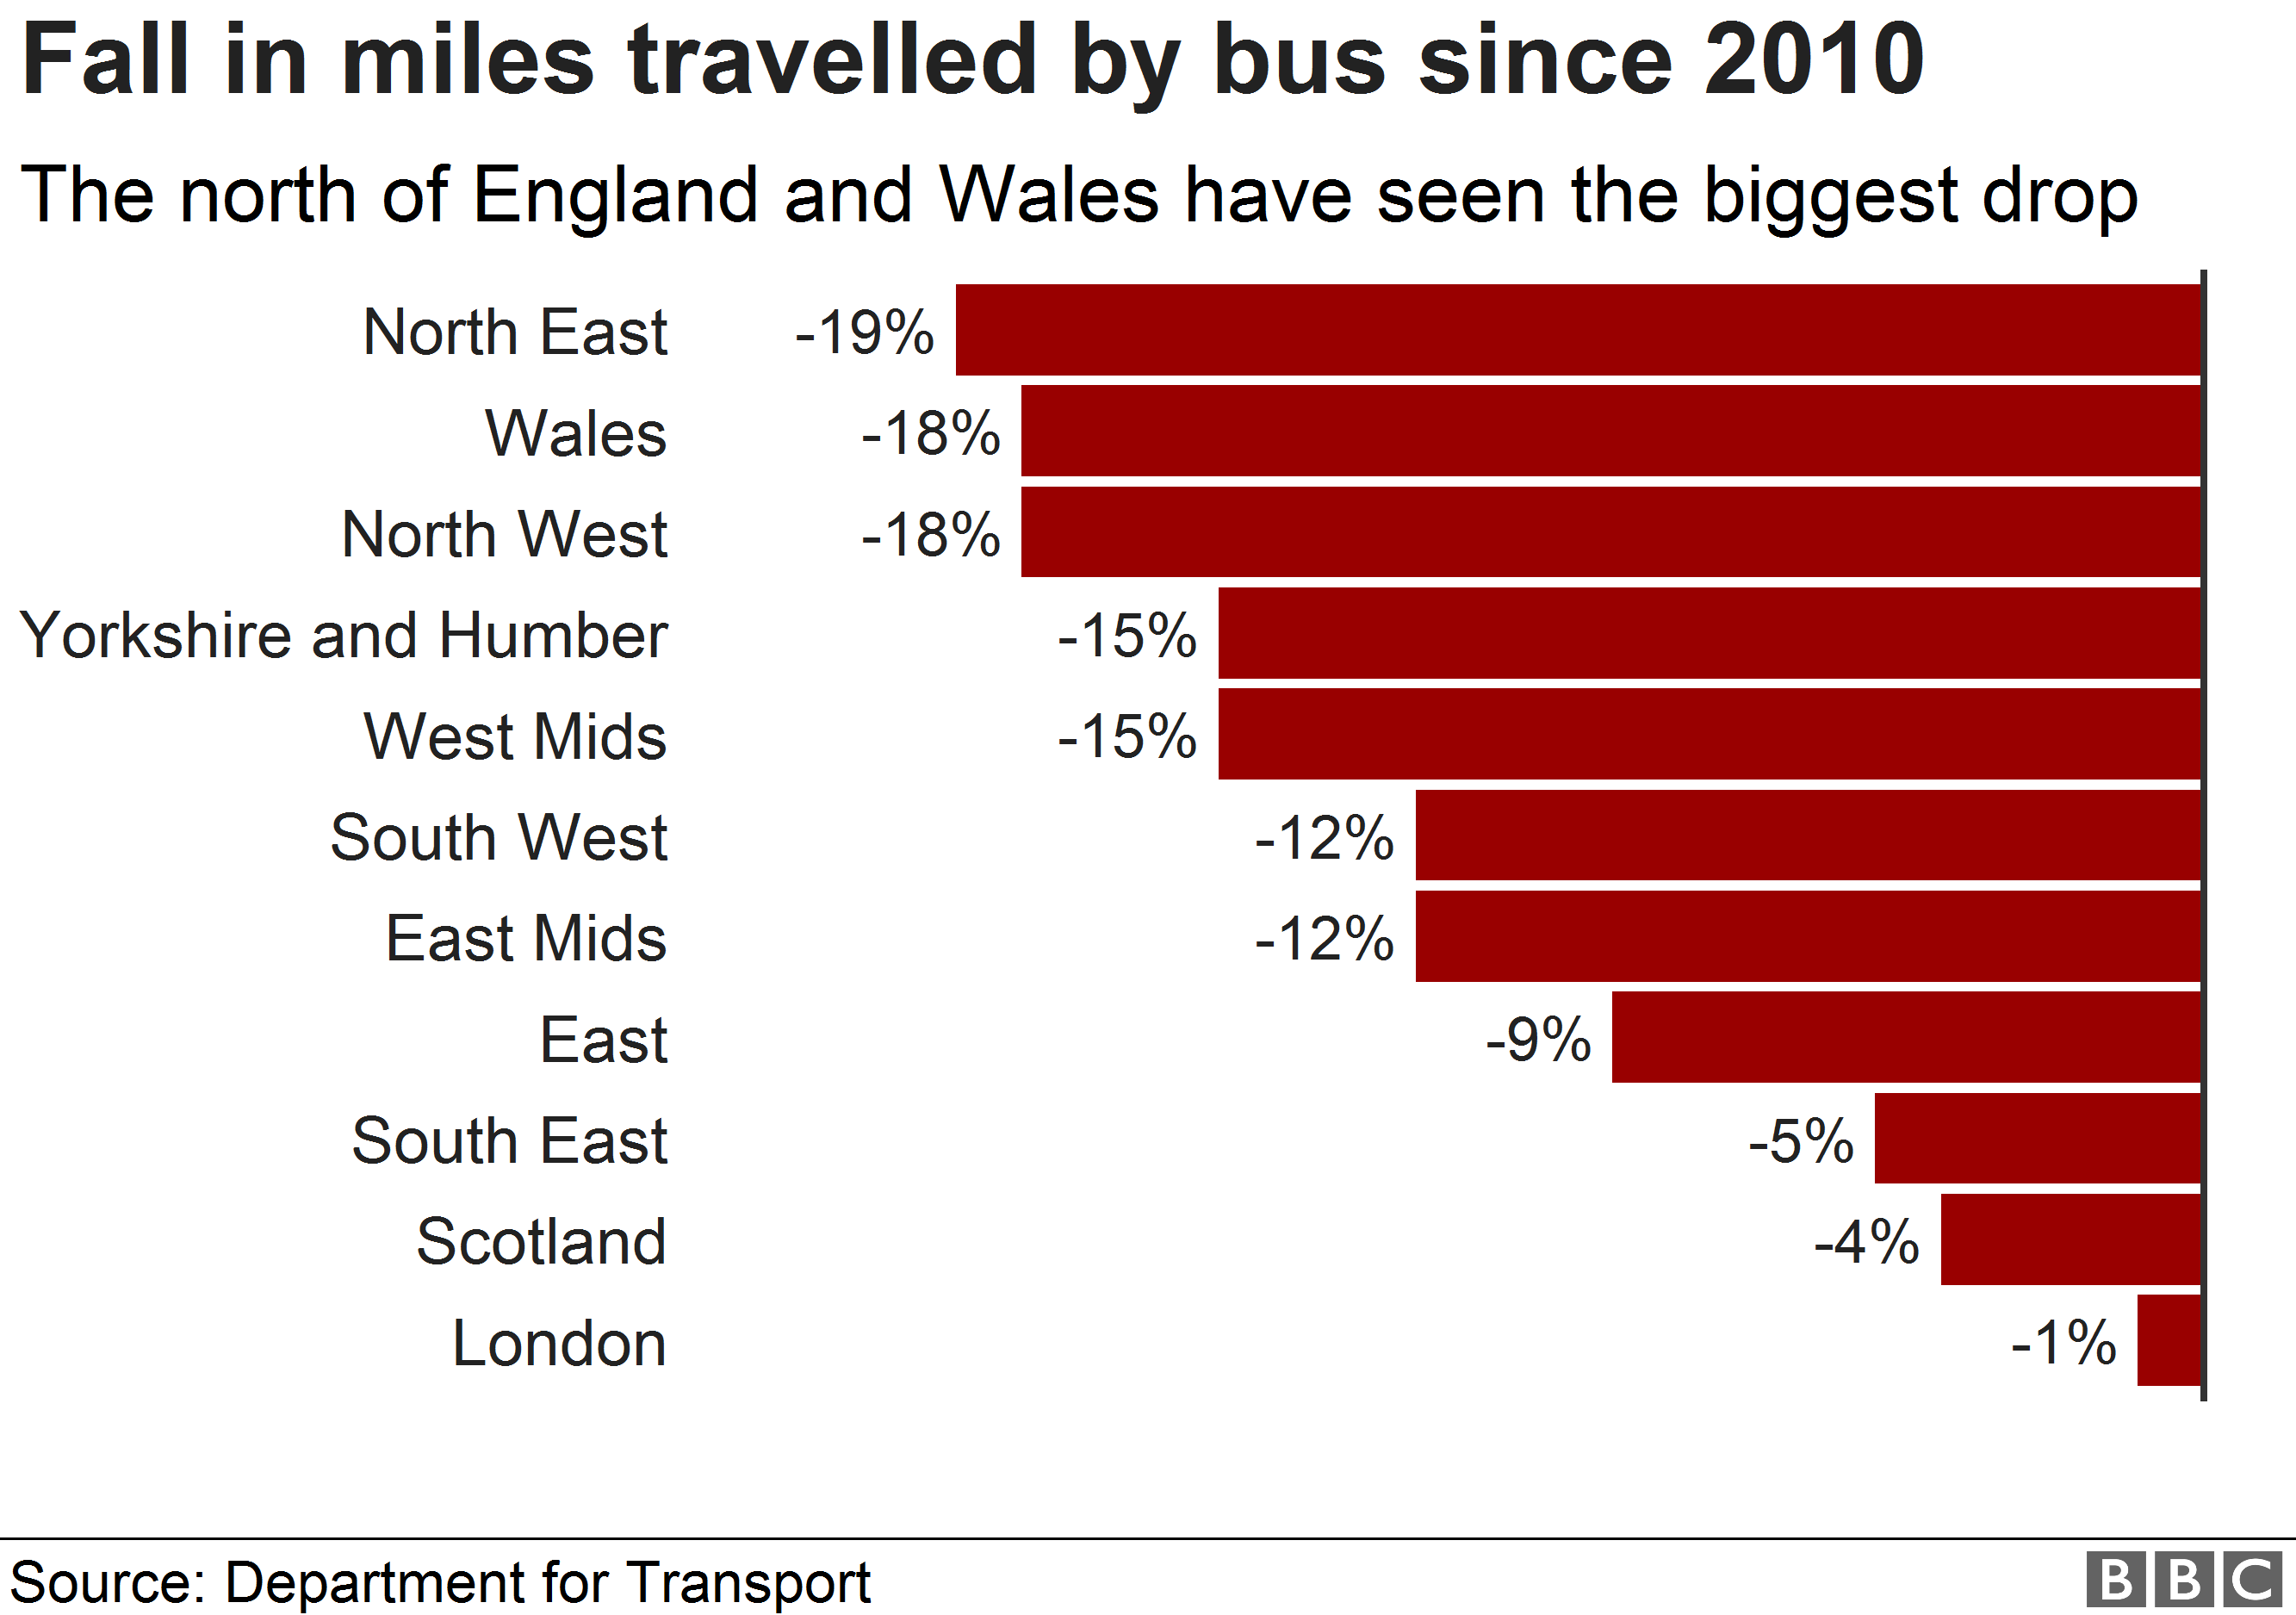 Chart showing change in bus mileage since 2010-11